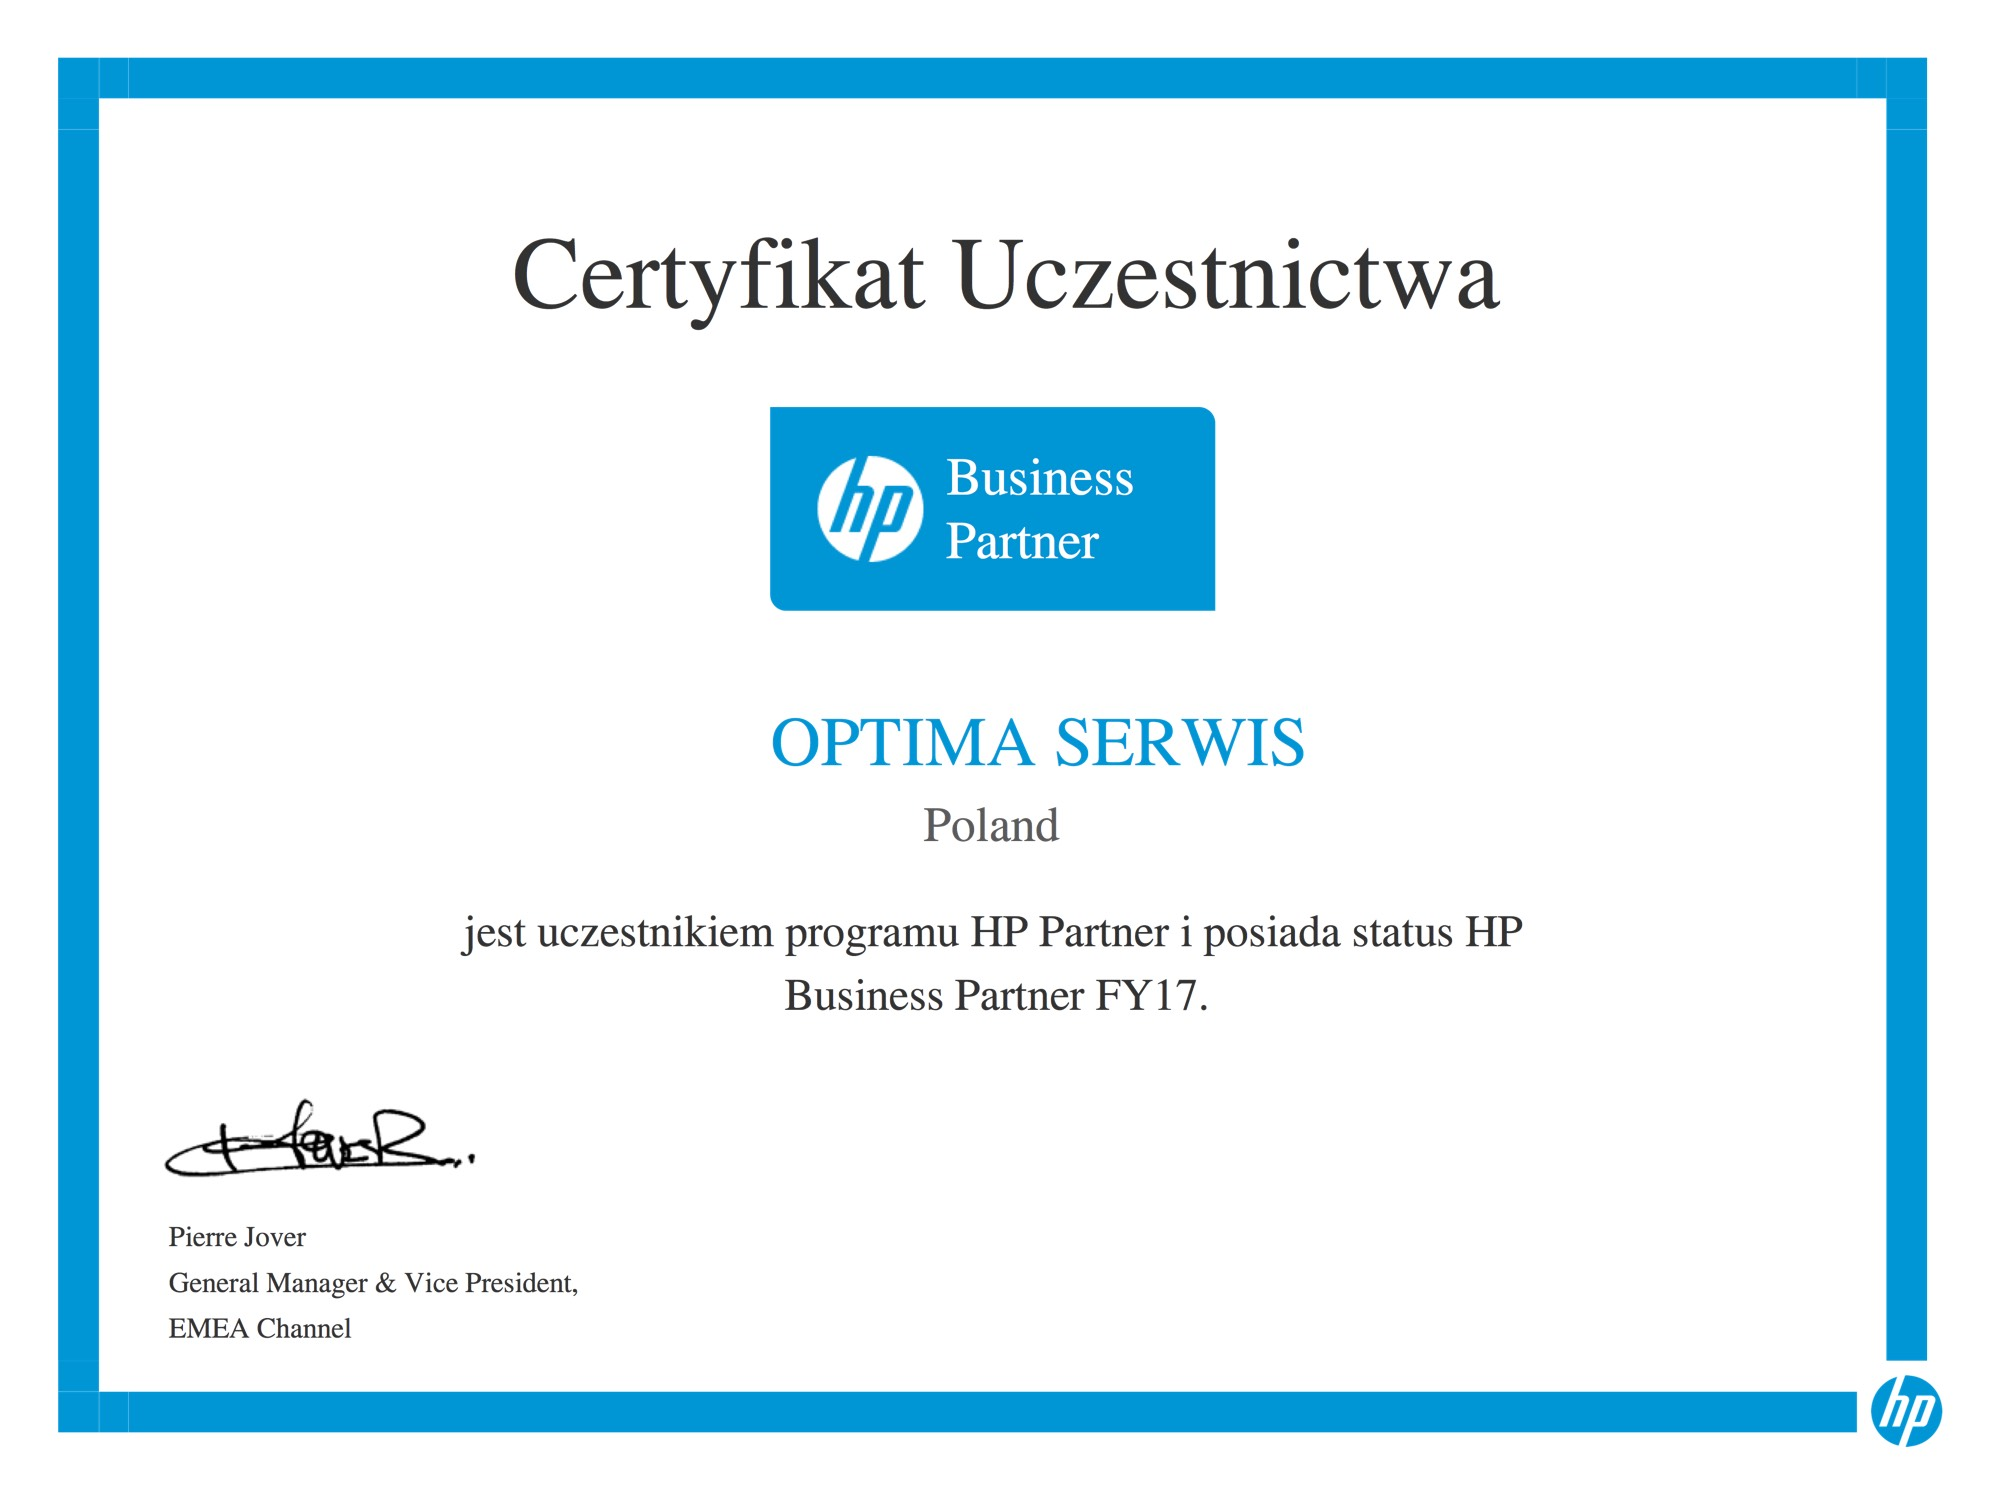 HP_business_partner_2017.jpg